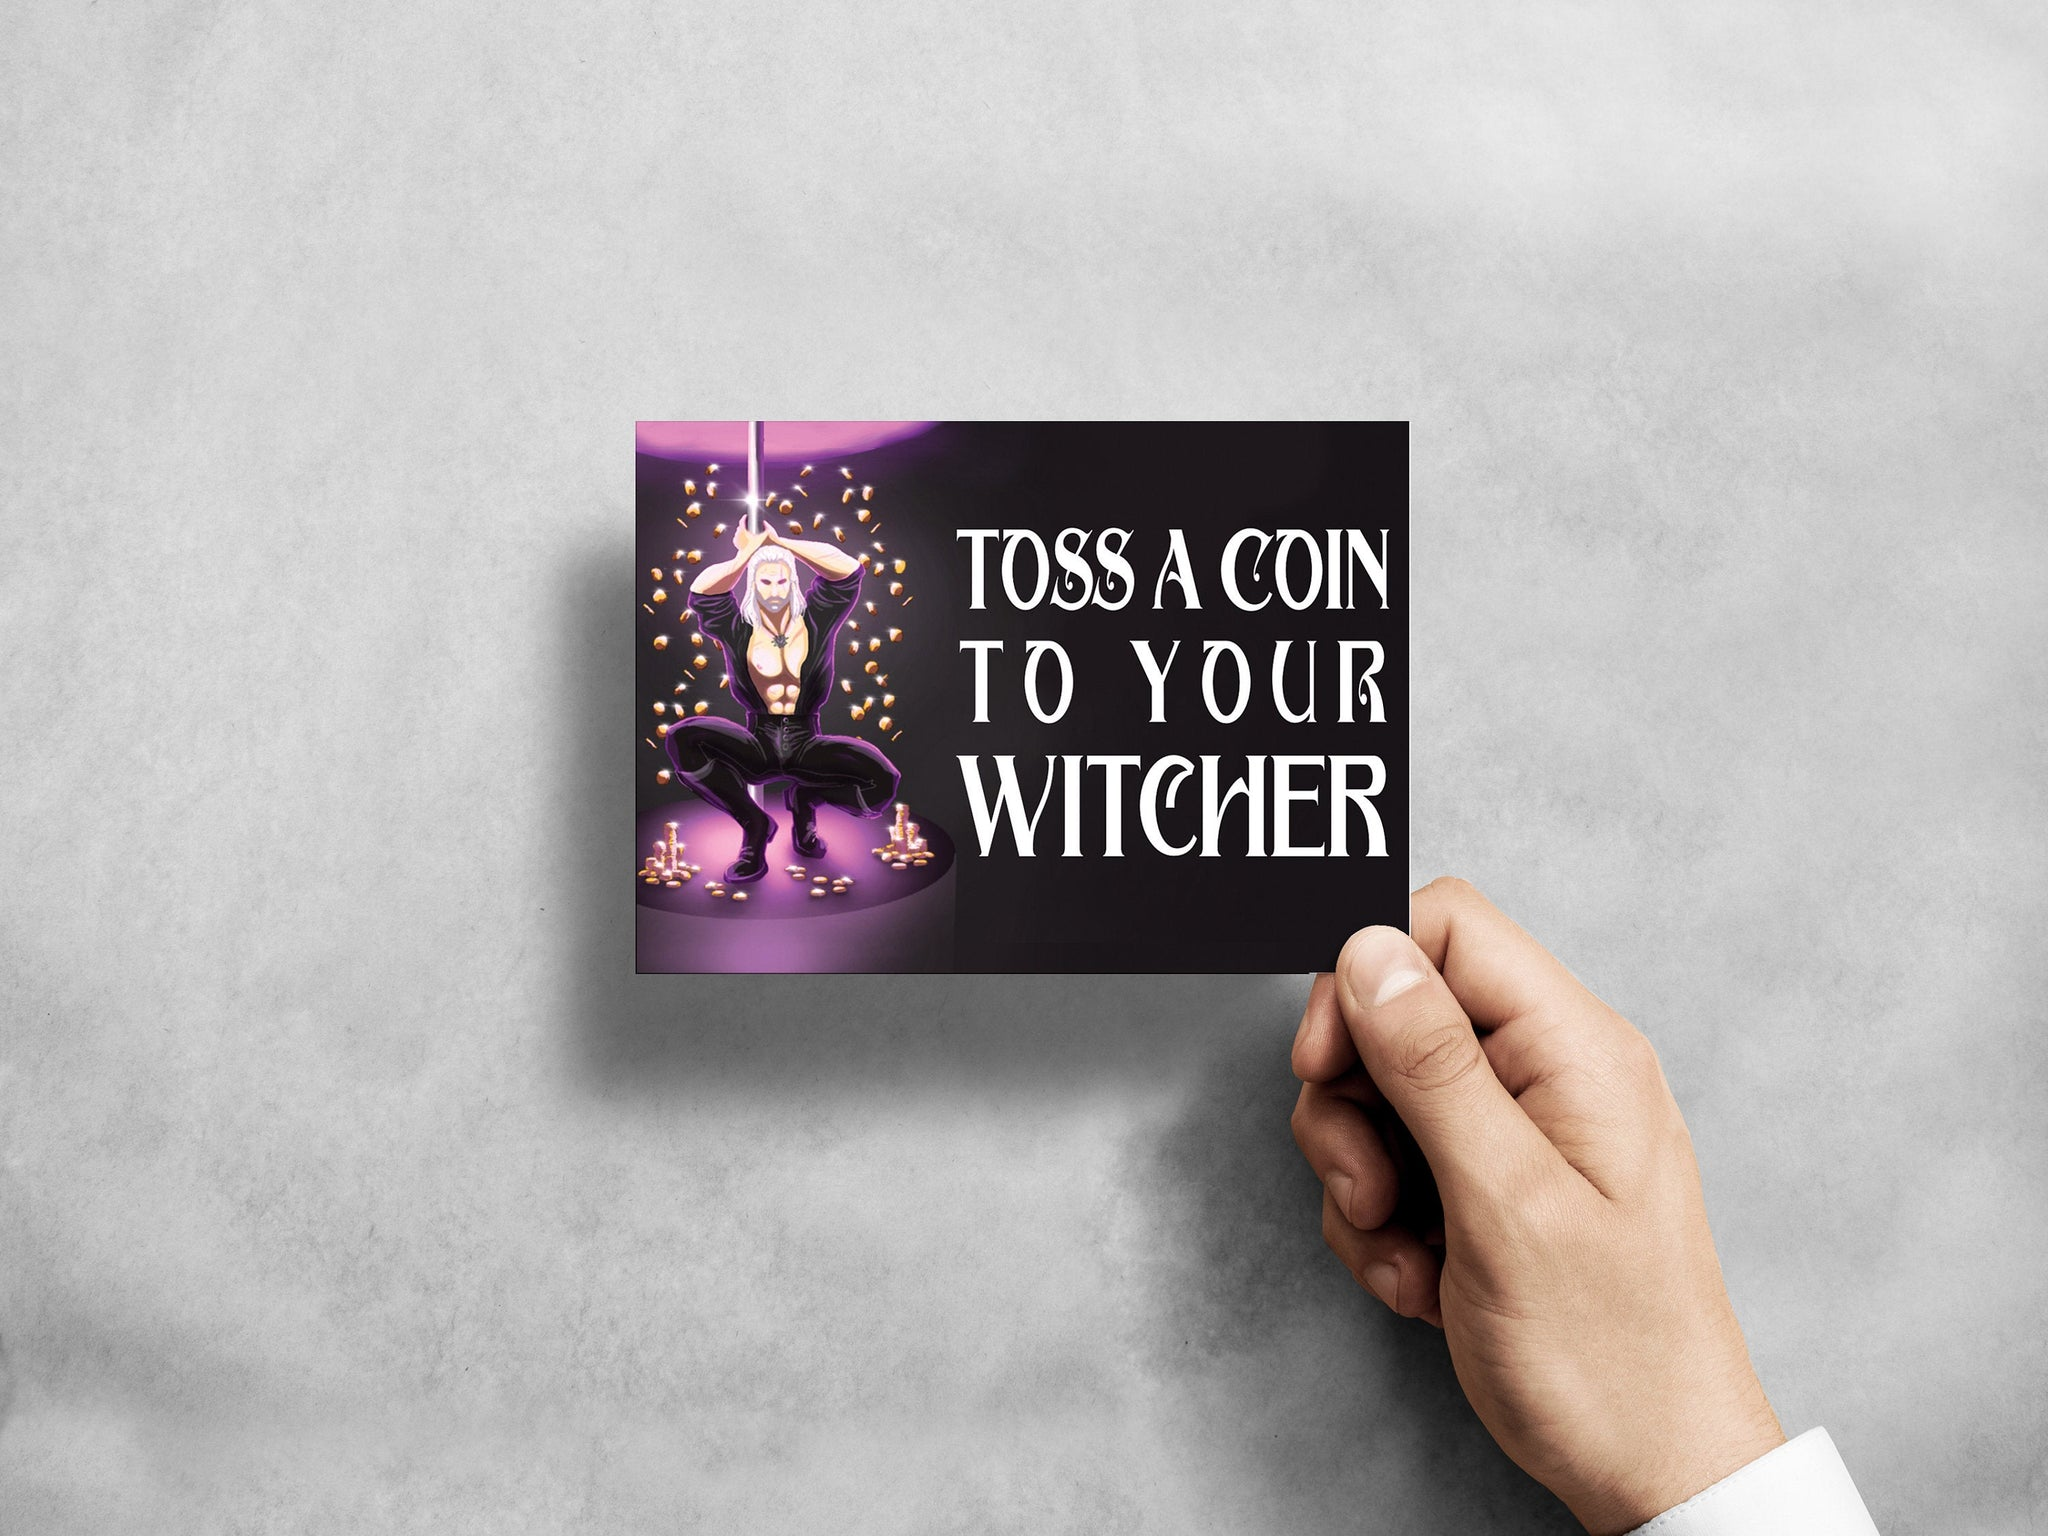 Toss A Coin to Your Witcher 5x7 Prints (3 Options)